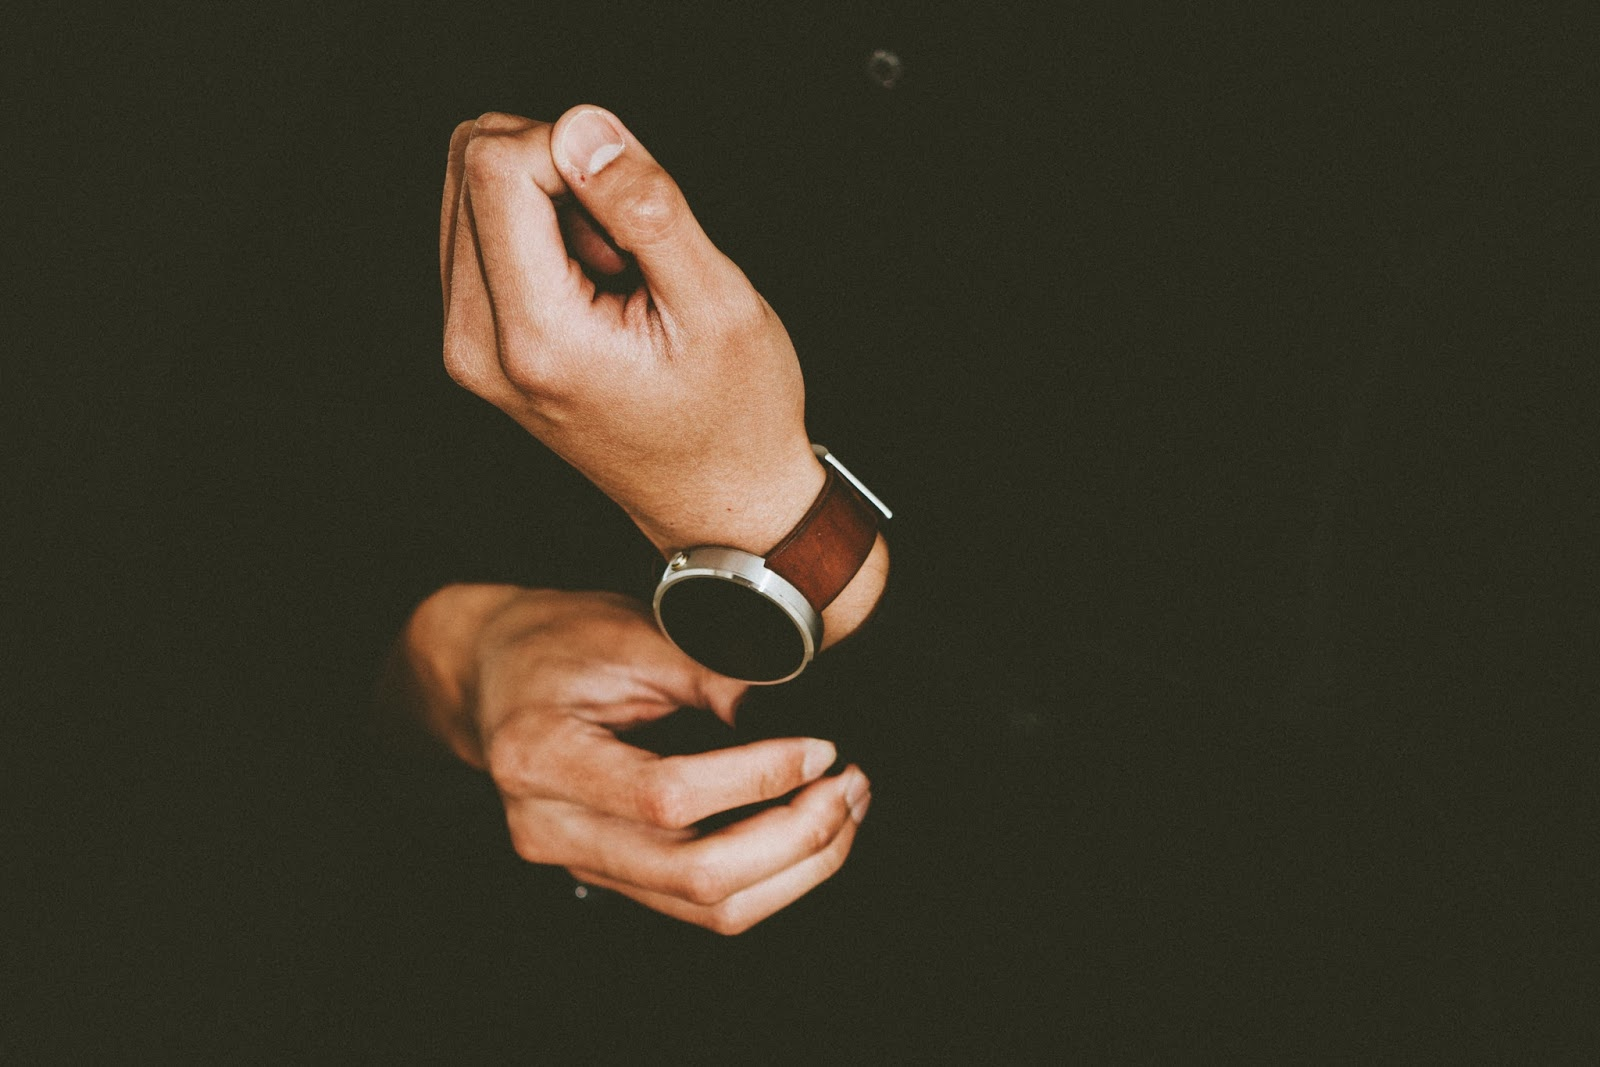 Wrist-Wear For Winners: Four Unique Options For Wrist Accessories